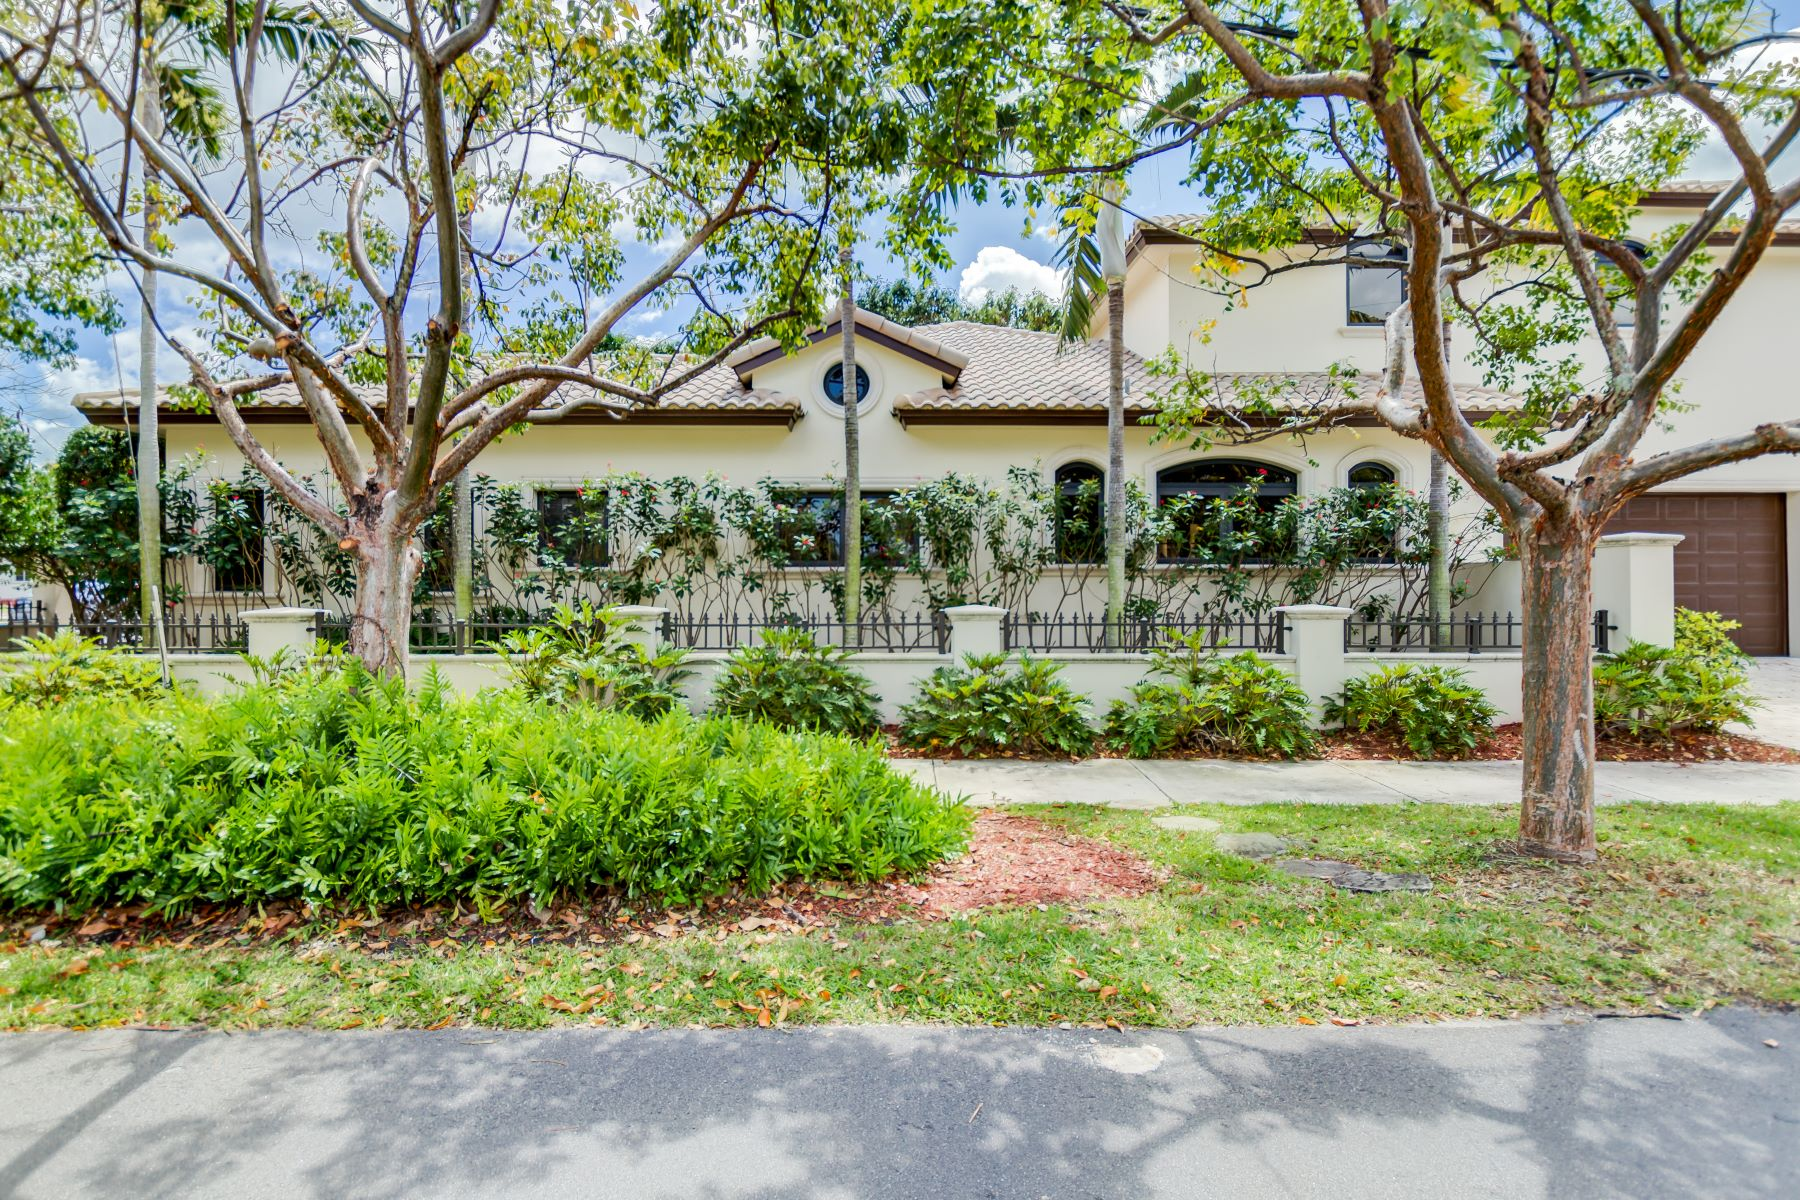 Single Family Home for Sale at 745 N Victoria Park Rd Fort Lauderdale, Florida, 33304 United States